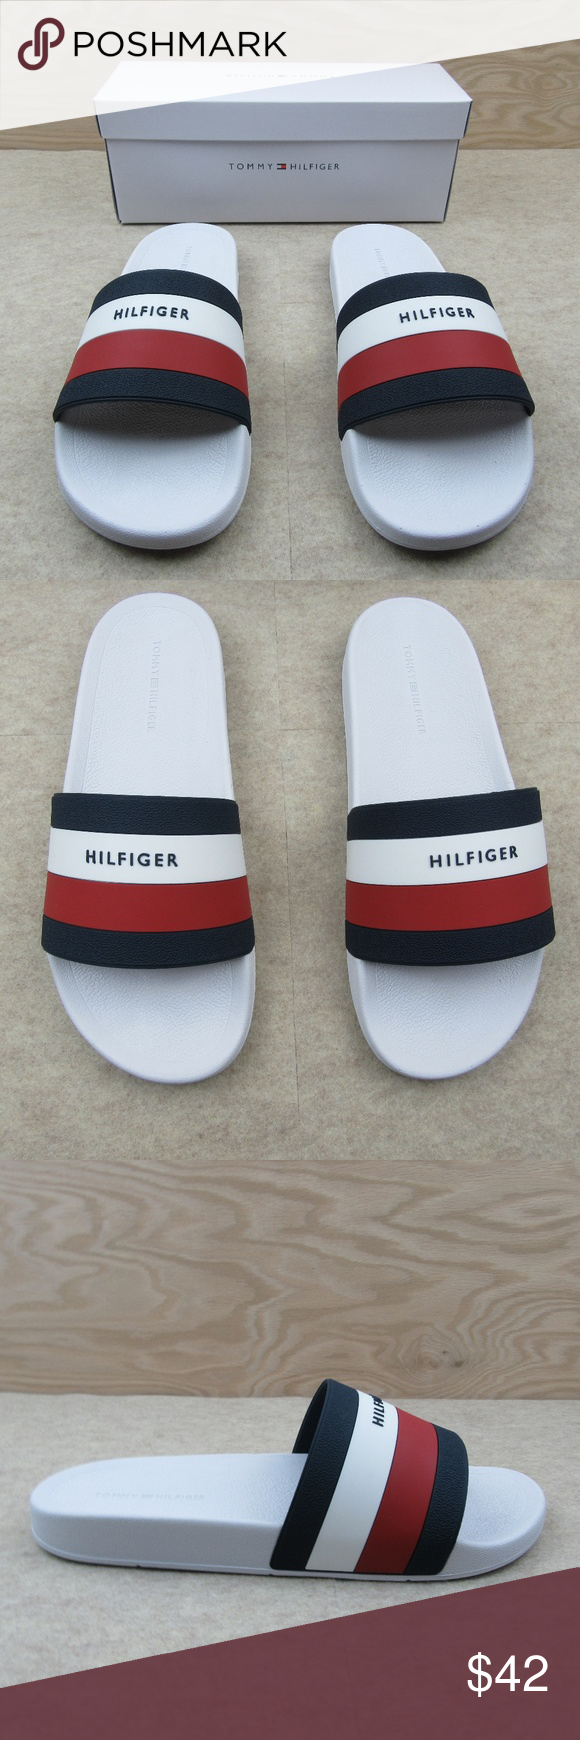 e9f4e5a9a Tommy Hilfiger Men s Earthy Slides Sandals Size 11 Tommy Hilfiger Men s  Earthy Slides Sandals White Style - Slides Men s Size 11 Brand NEW with Box  Makes a ...